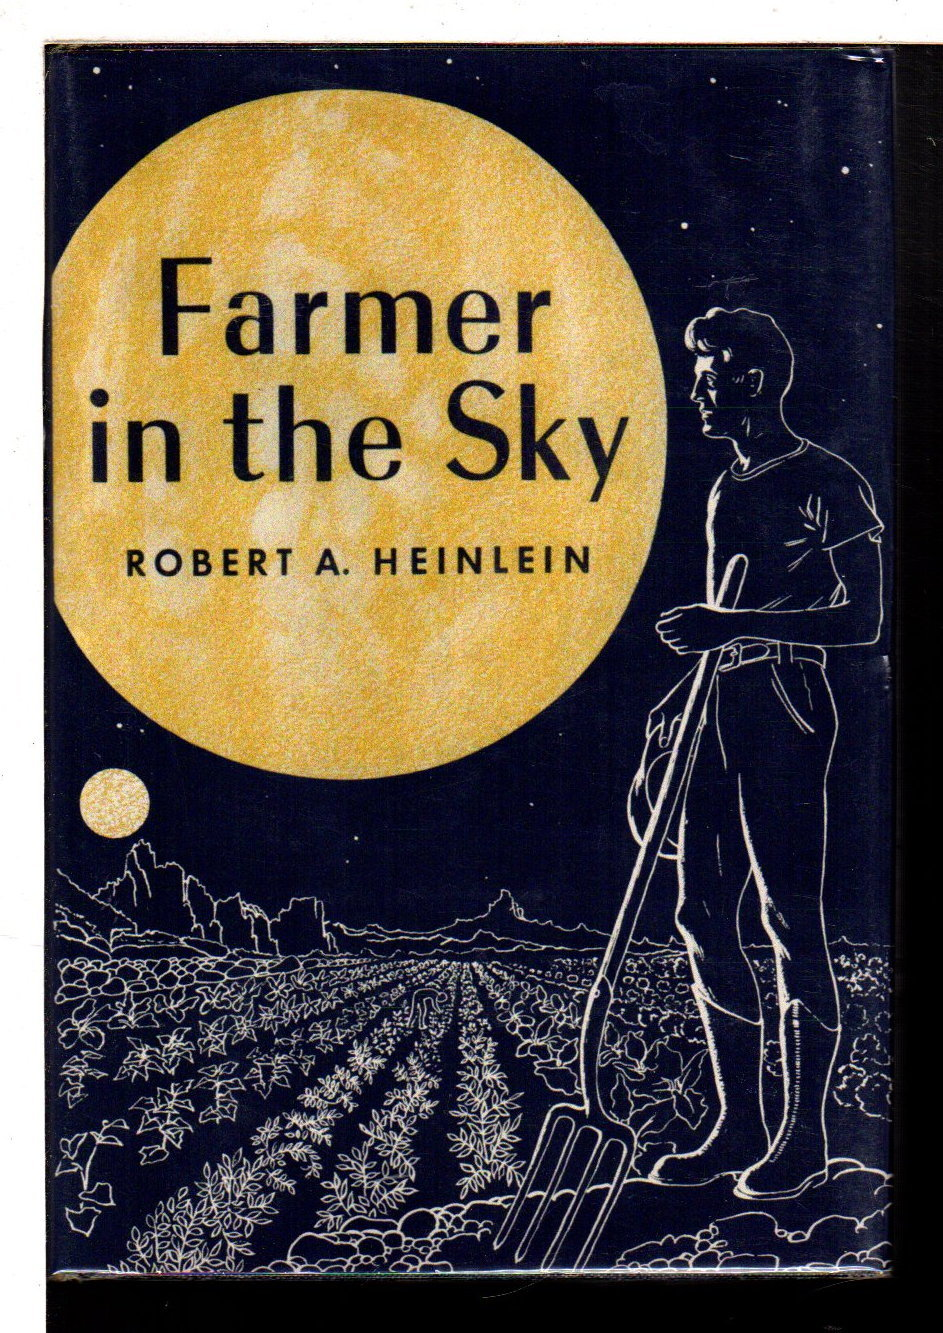 an analysis of the book farmer in the sky robert a heinlein Summary of farmer in the sky by robert a heinlein below is a list of farmer in the sky cliff notes and farmer in the sky sparknotes not looking for a farmer in the sky.